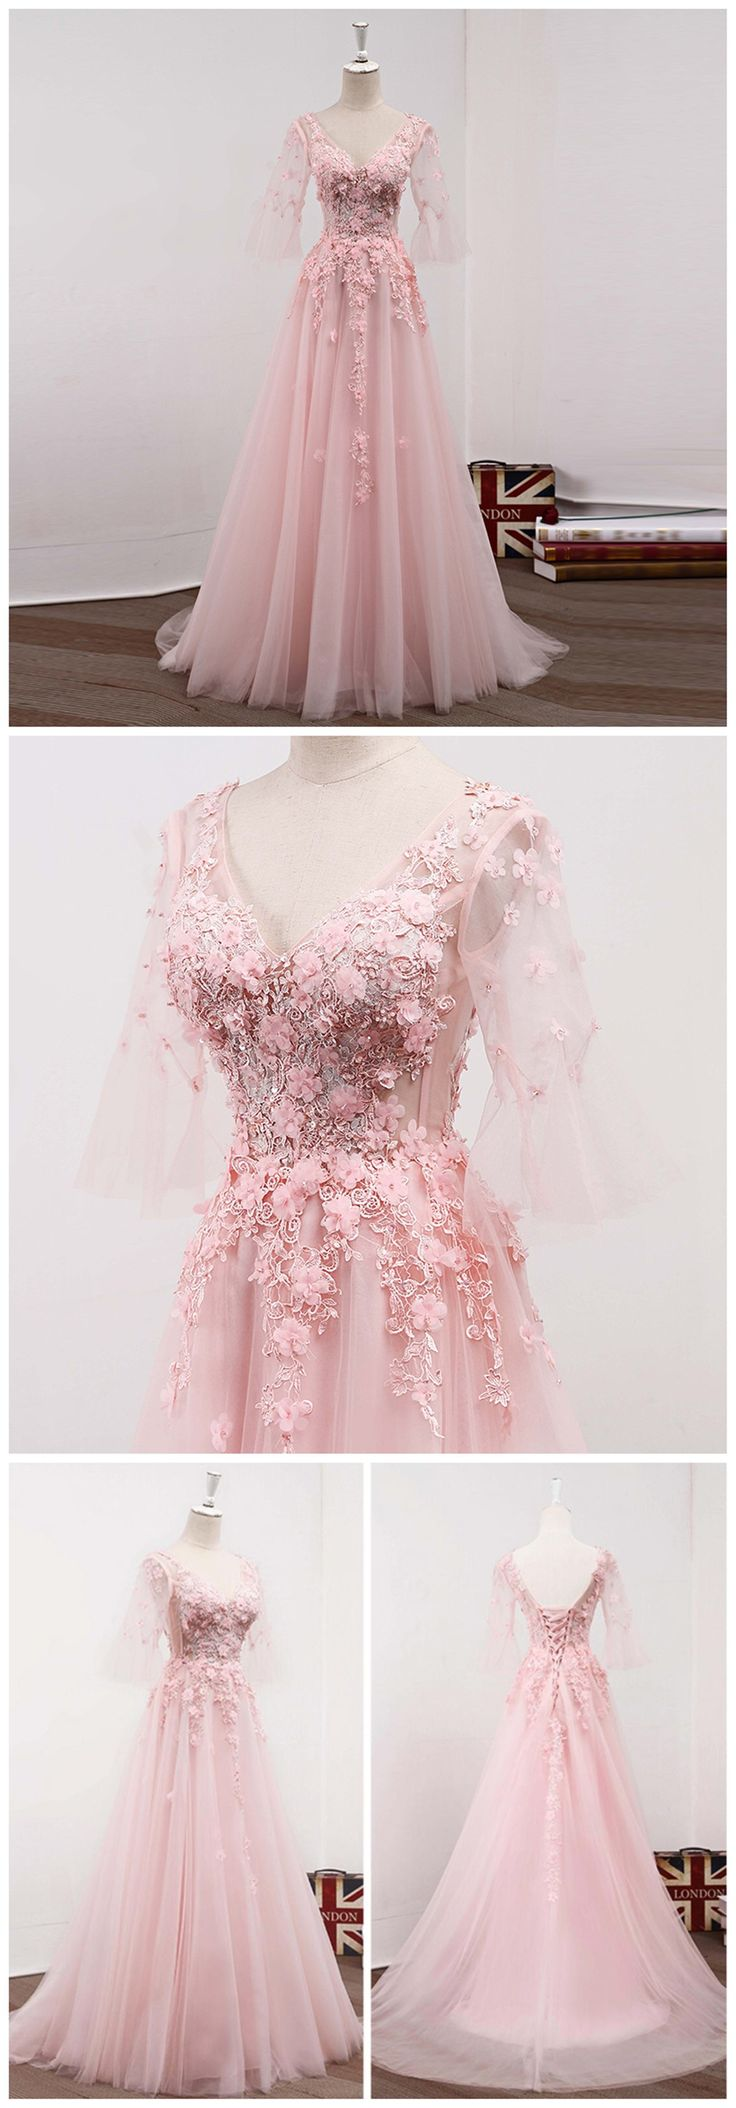 Long Sleeve V Neckline Pink Lace Beaded Evening Prom Dresses, Cheap Long Party Prom Dresses, Custom 2018 Affordable Prom Dresses, 18057